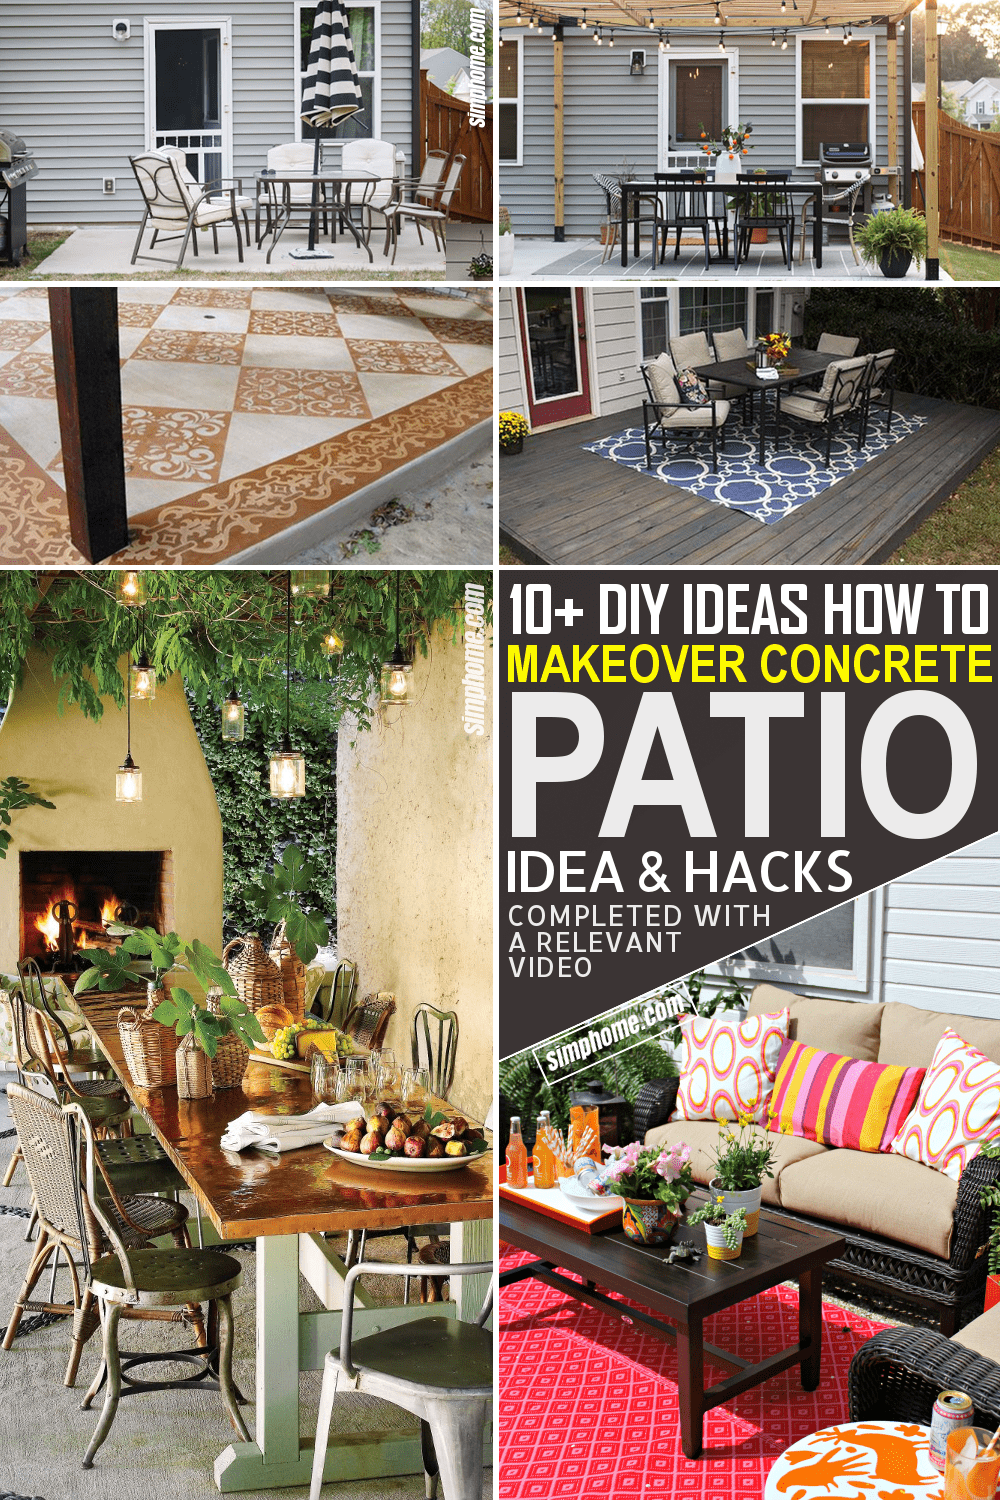 10 Ideas How to Makeover Concrete Patio for a Small Backyard via Simphome.com